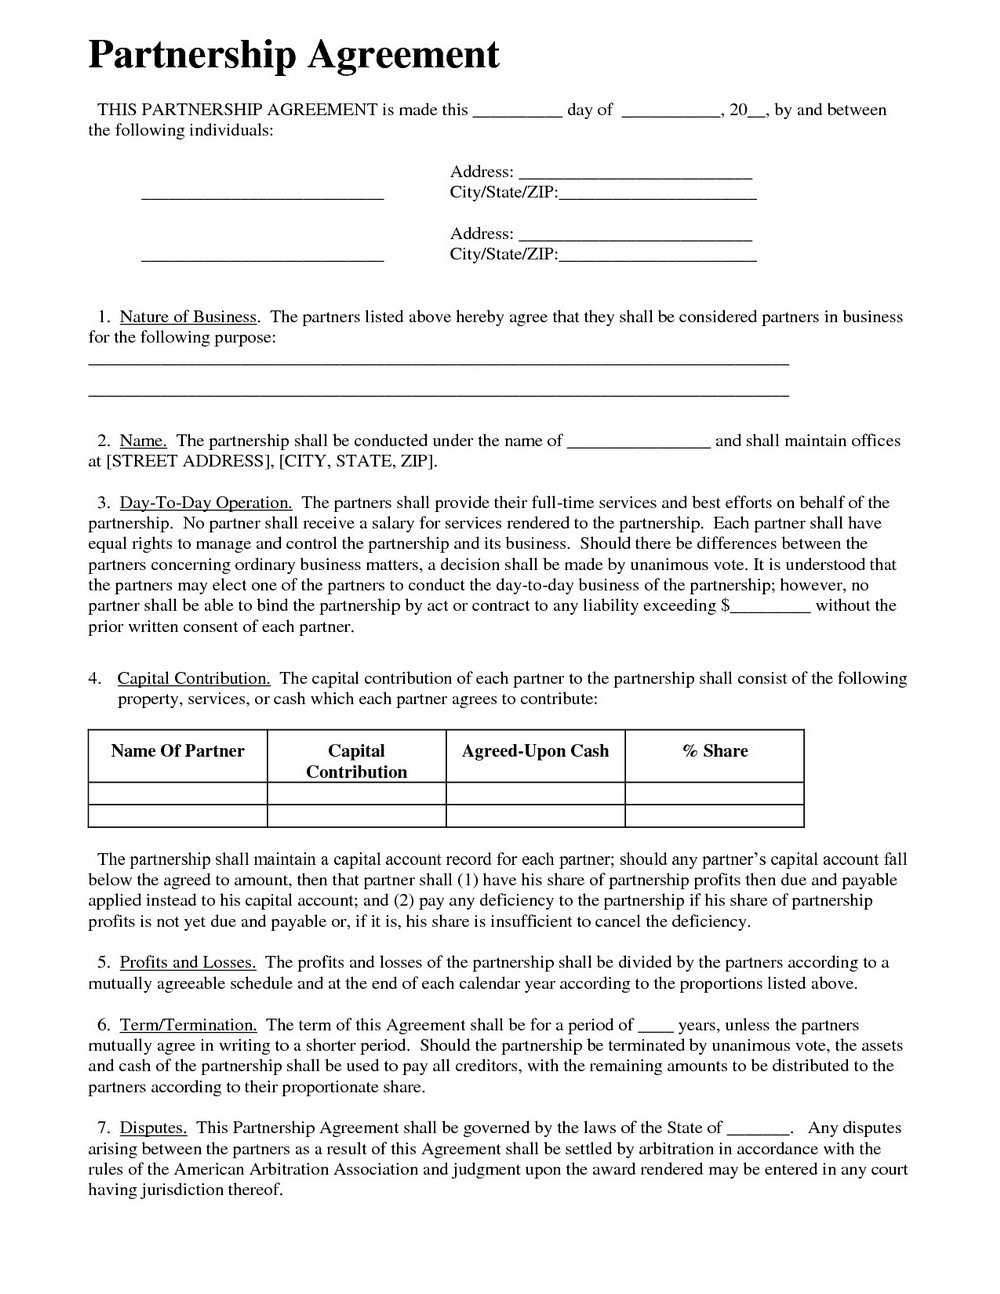 Partnership Contract Template Free